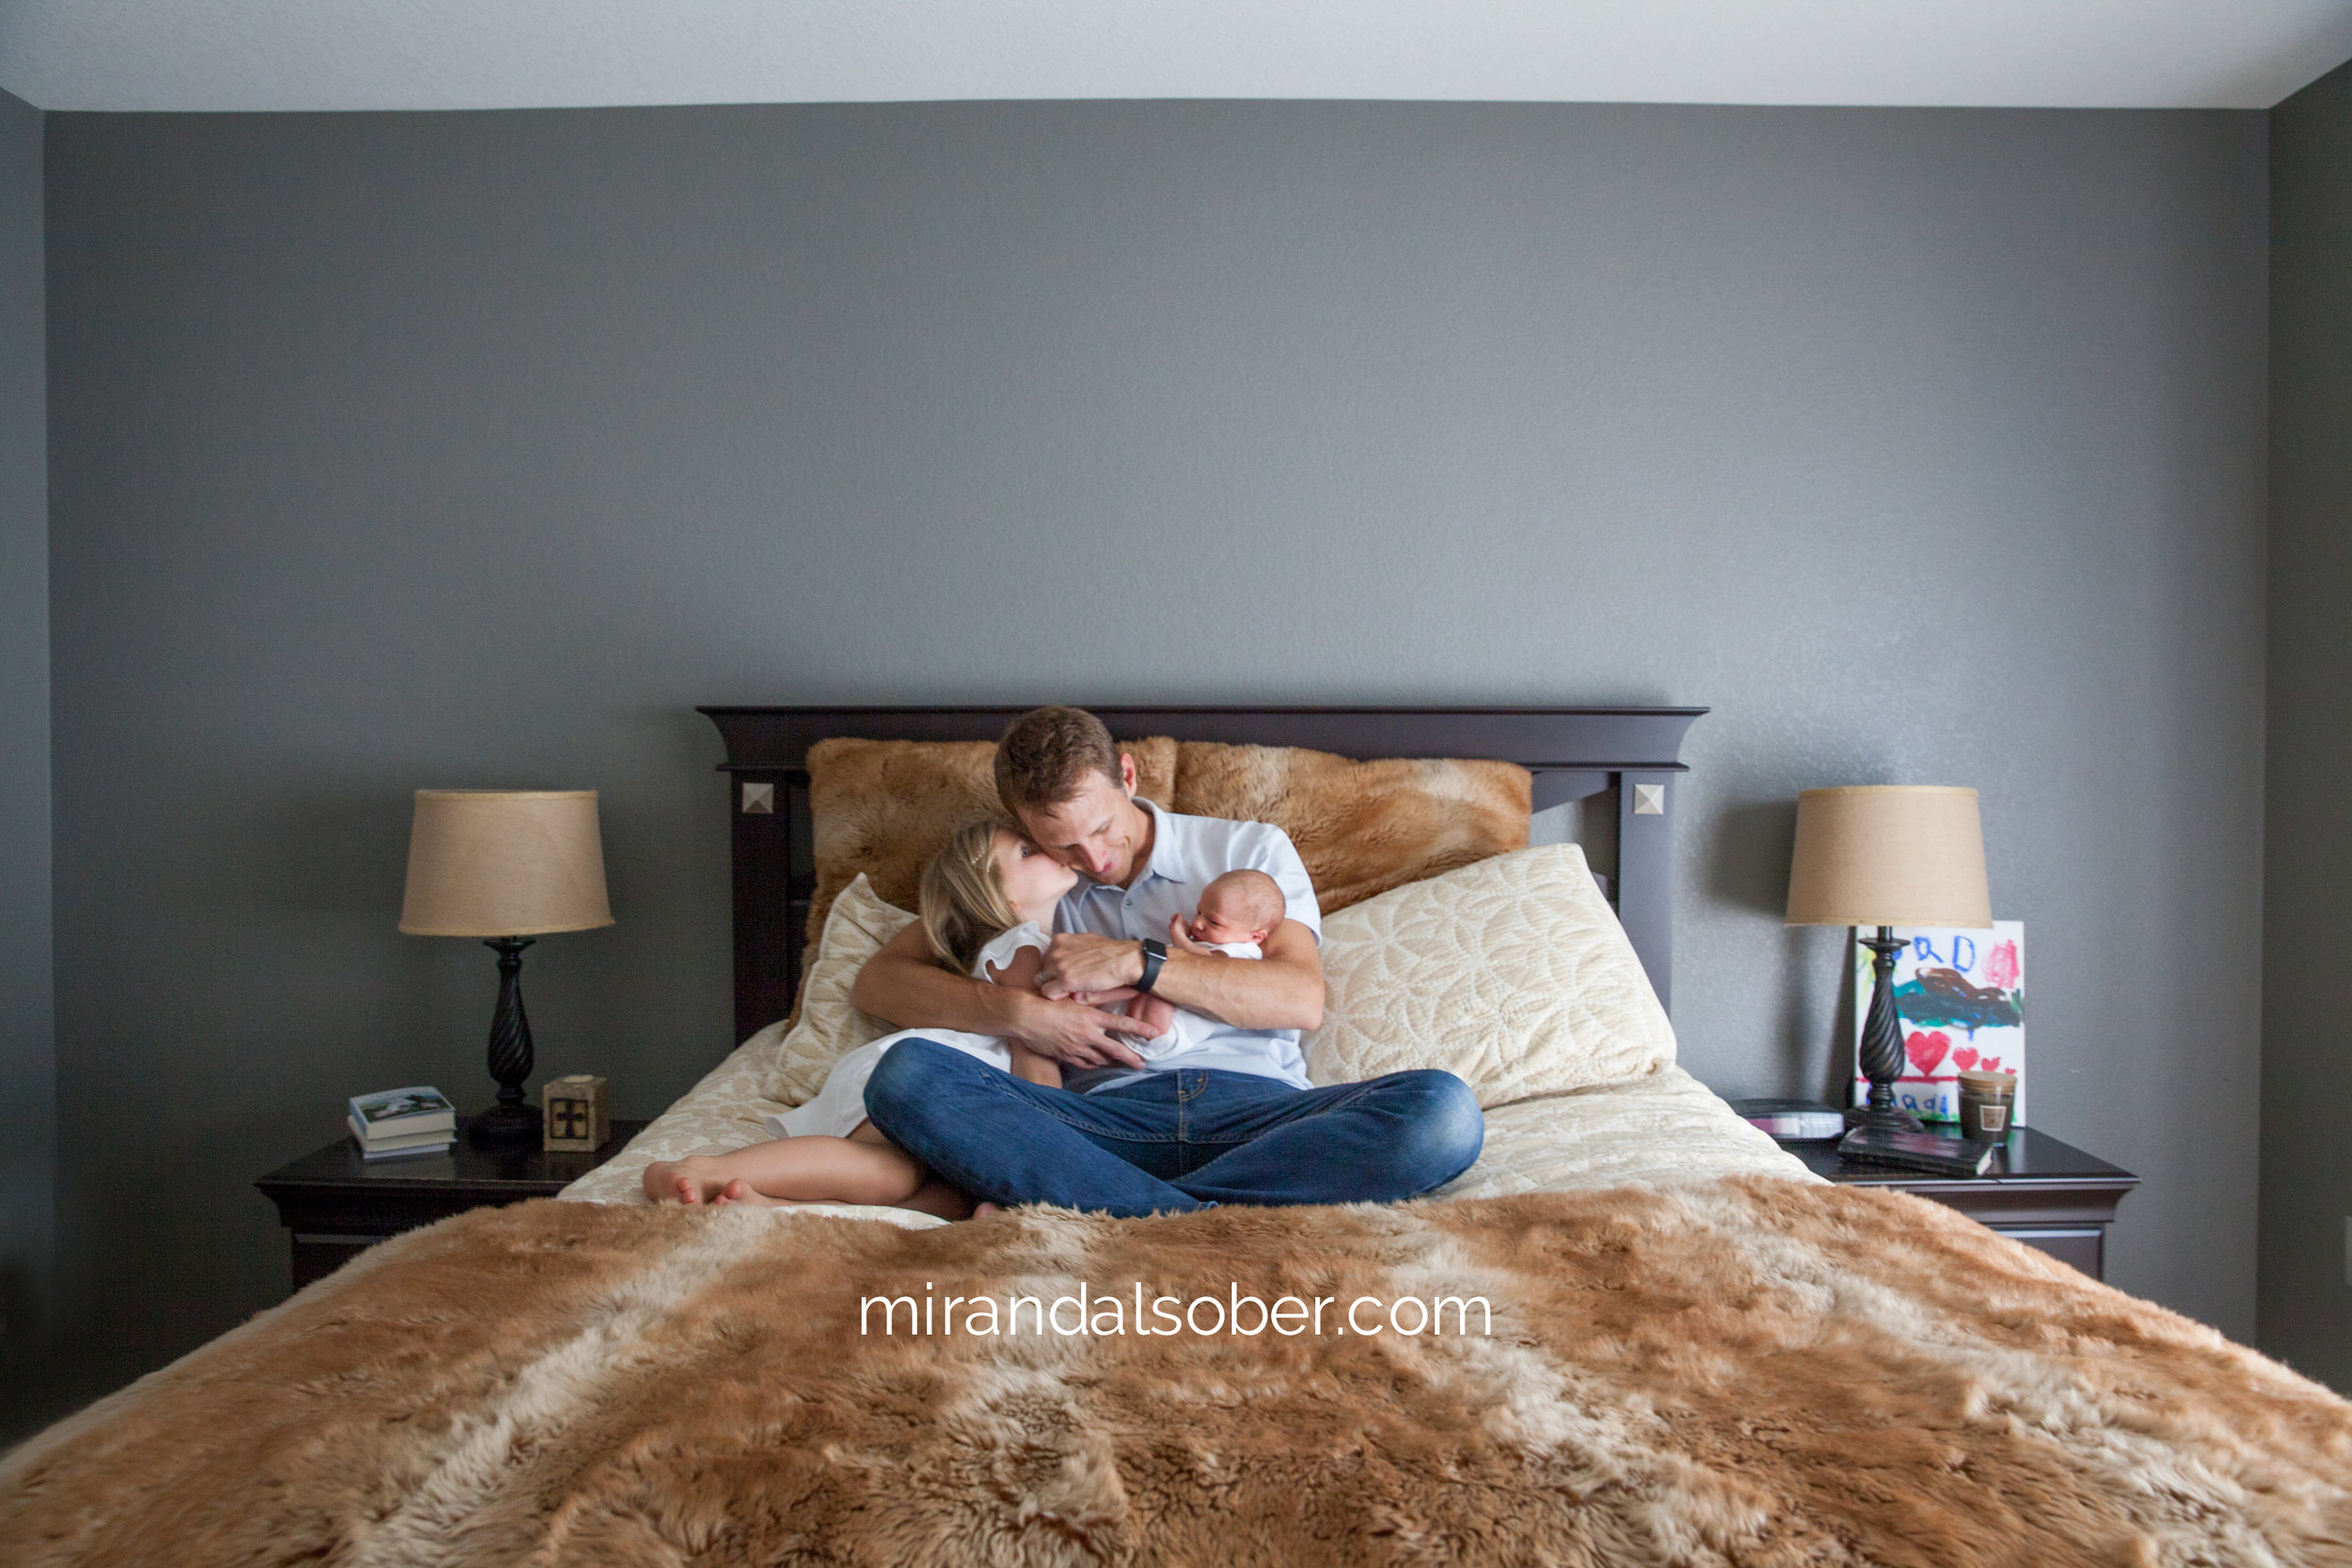 Boulder newborn photographers, Miranda L. Sober Photography, Denver lifestyle photographers near me